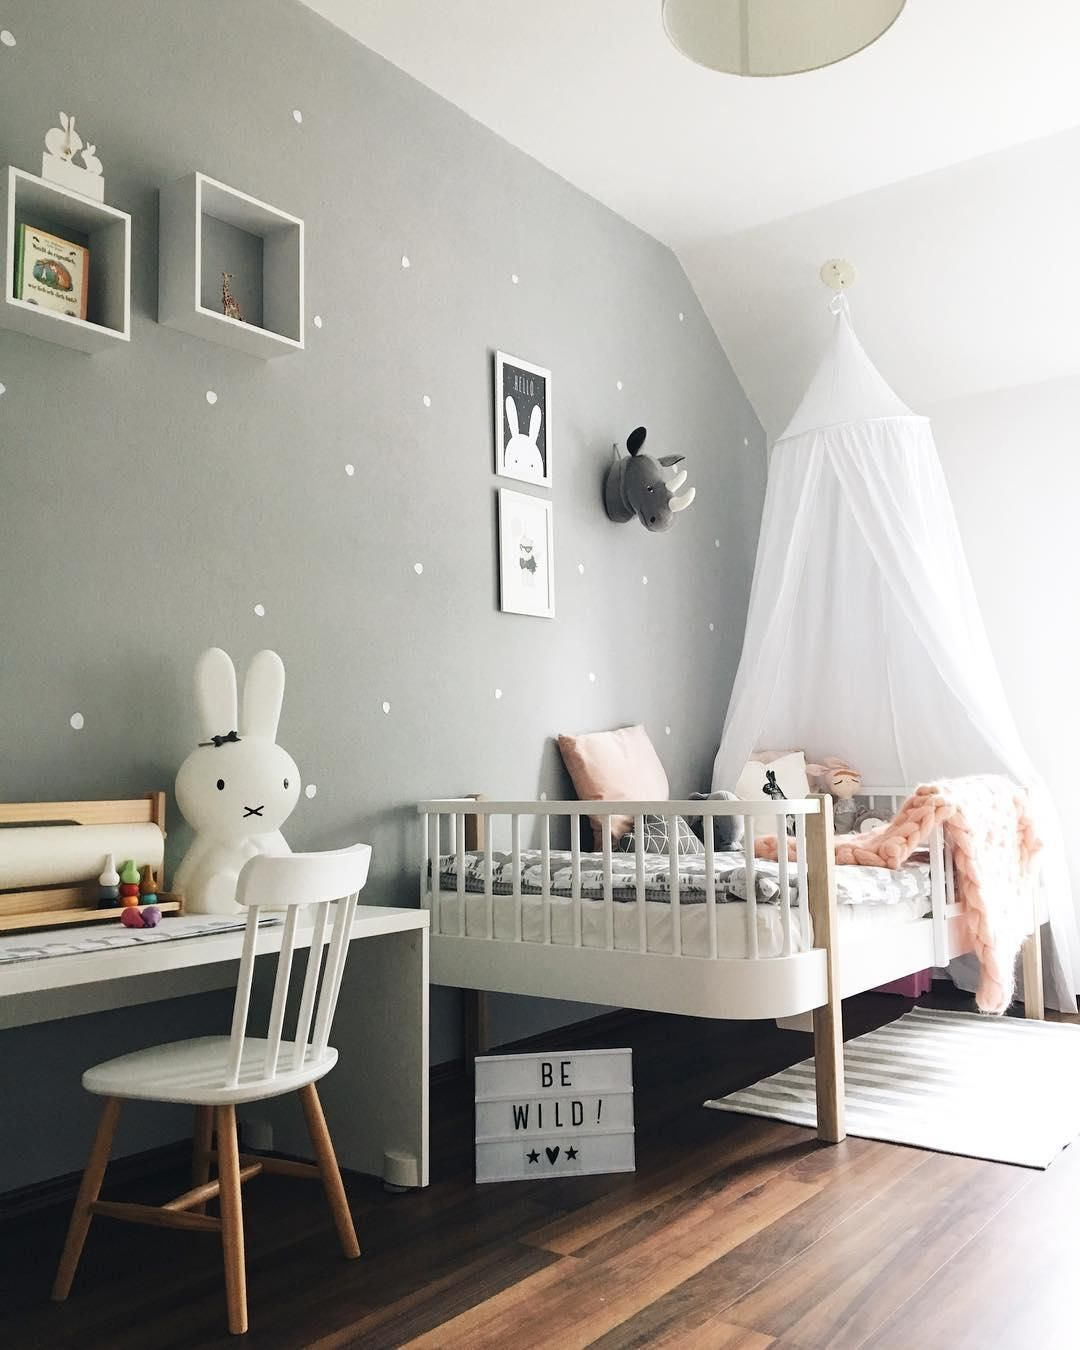 led leuchtbox a4 kinderzimmer inspirationen kinder zimmer kinderzimmer nachtlicht. Black Bedroom Furniture Sets. Home Design Ideas